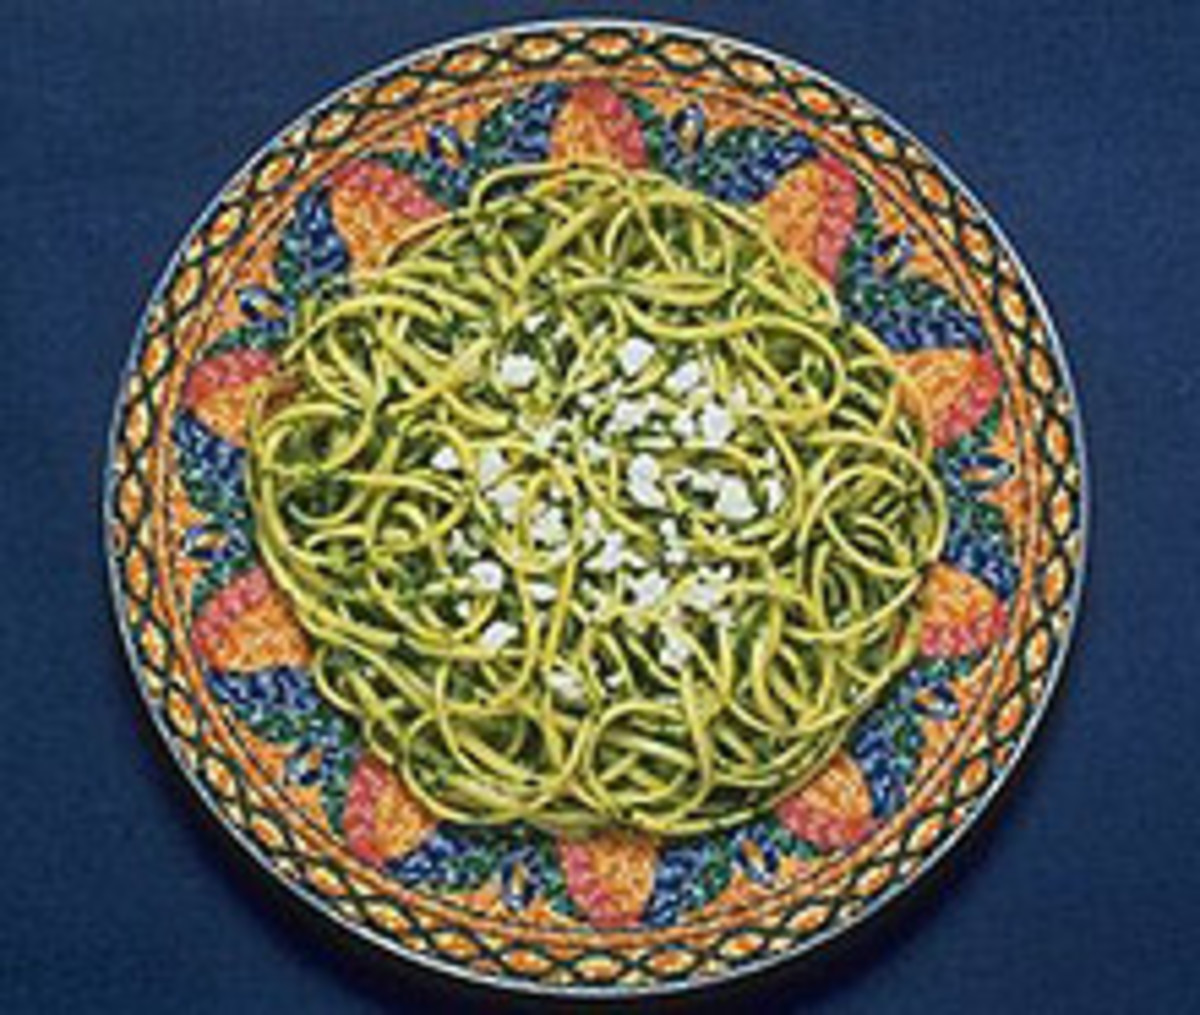 Linguine and Spinach Pesto